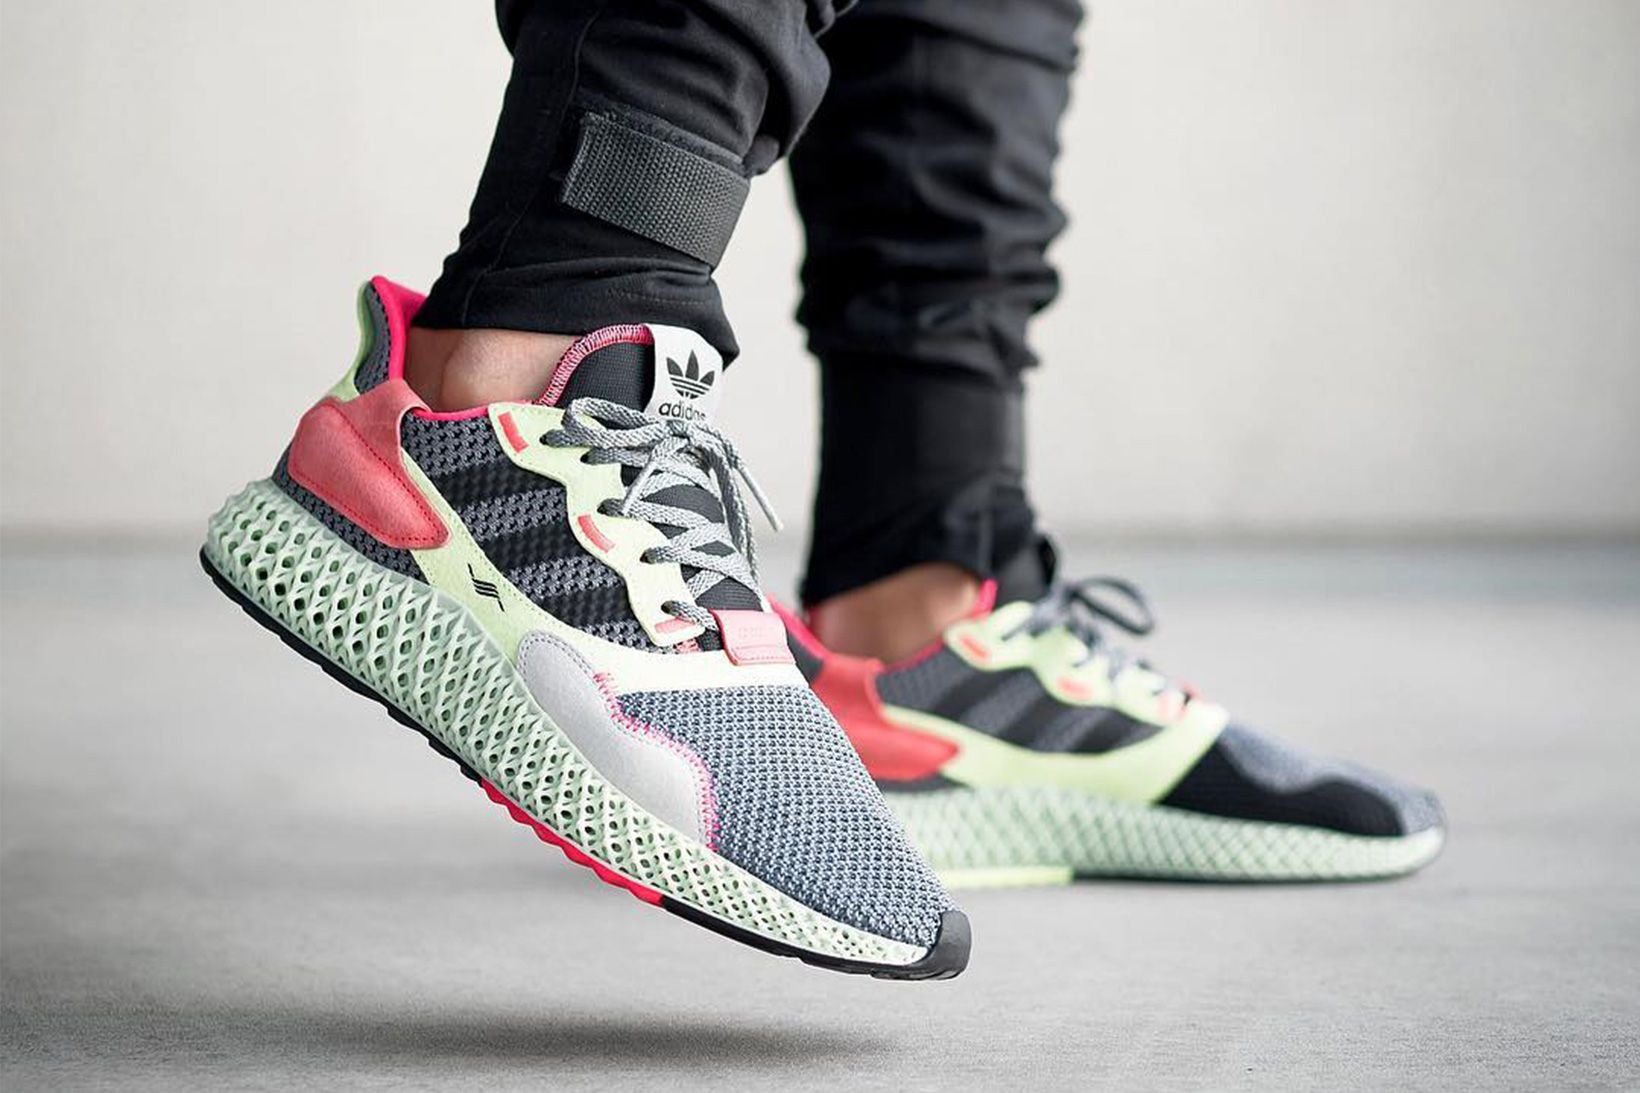 quality design 1c214 dab45 adidas ZX 4000 4D Surface in Two New Colorways #adidas ...